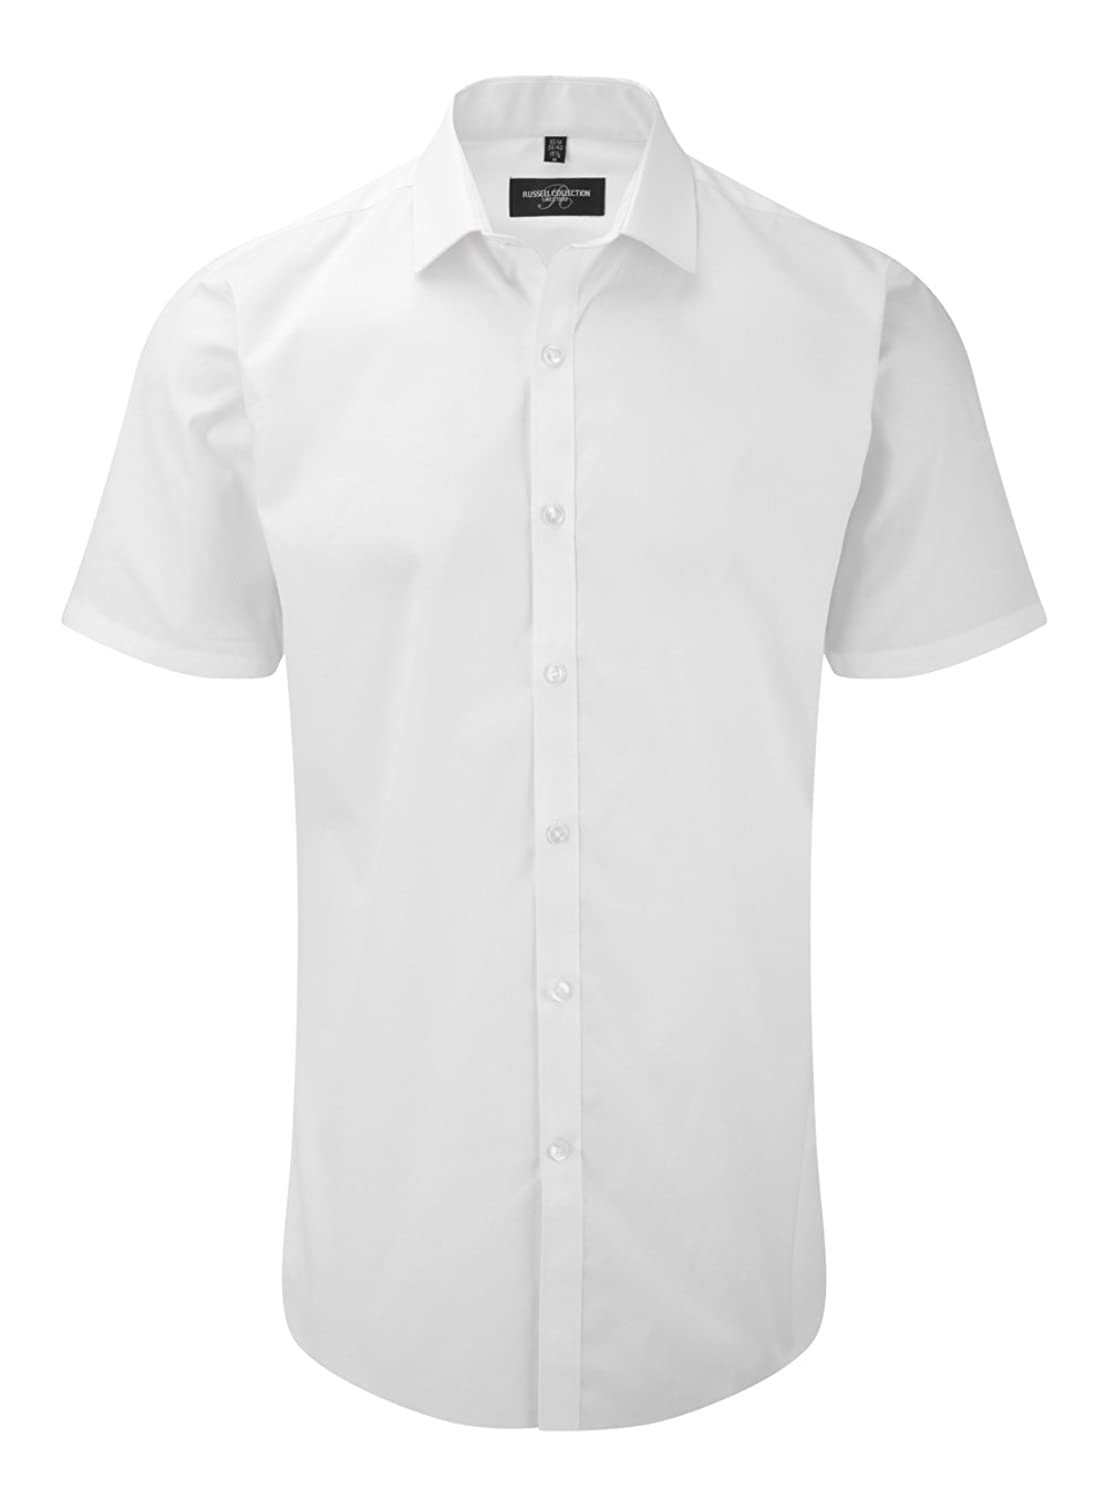 Russell Collection -Short sleeve ultimate stretch shirt (J961M) 2 colors